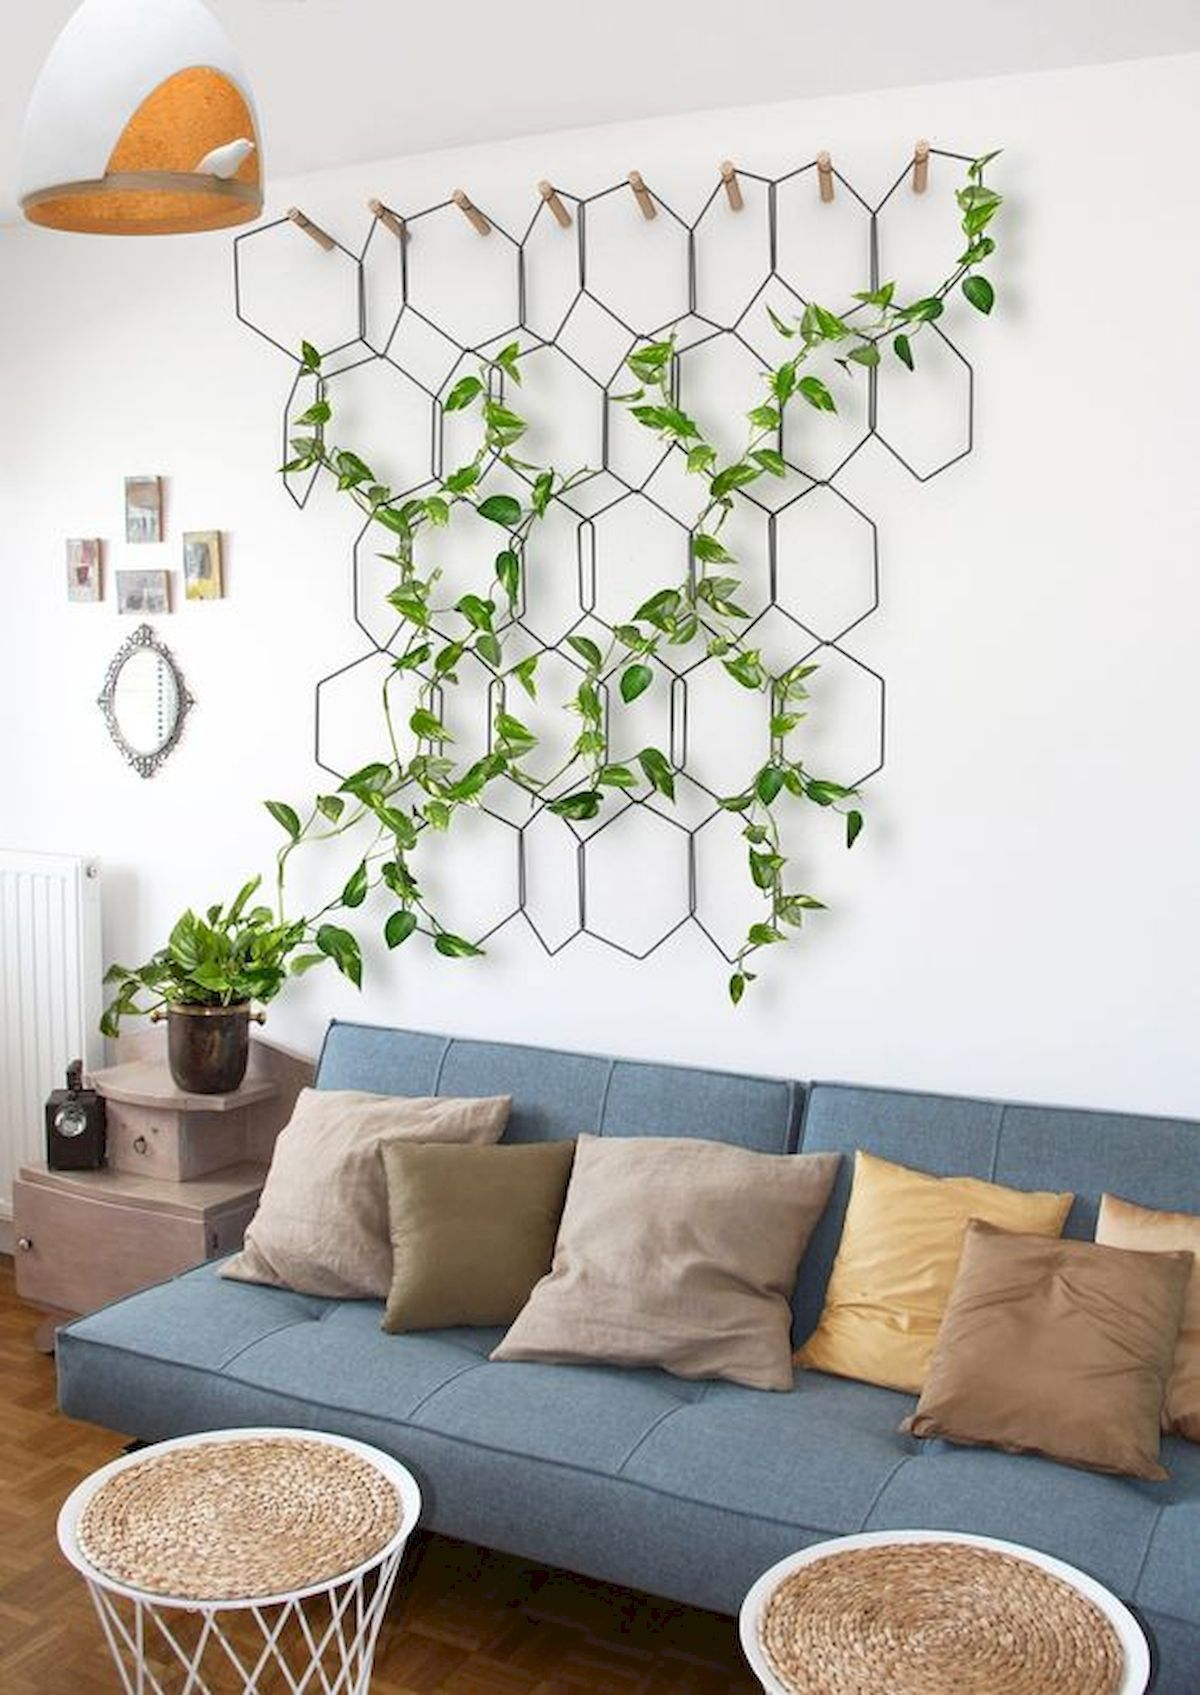 2019 Best Living Room Wall Art Ideas And Decorations 17 Worldecor Co Plant Decor Indoor Indoor Vines Room Decor